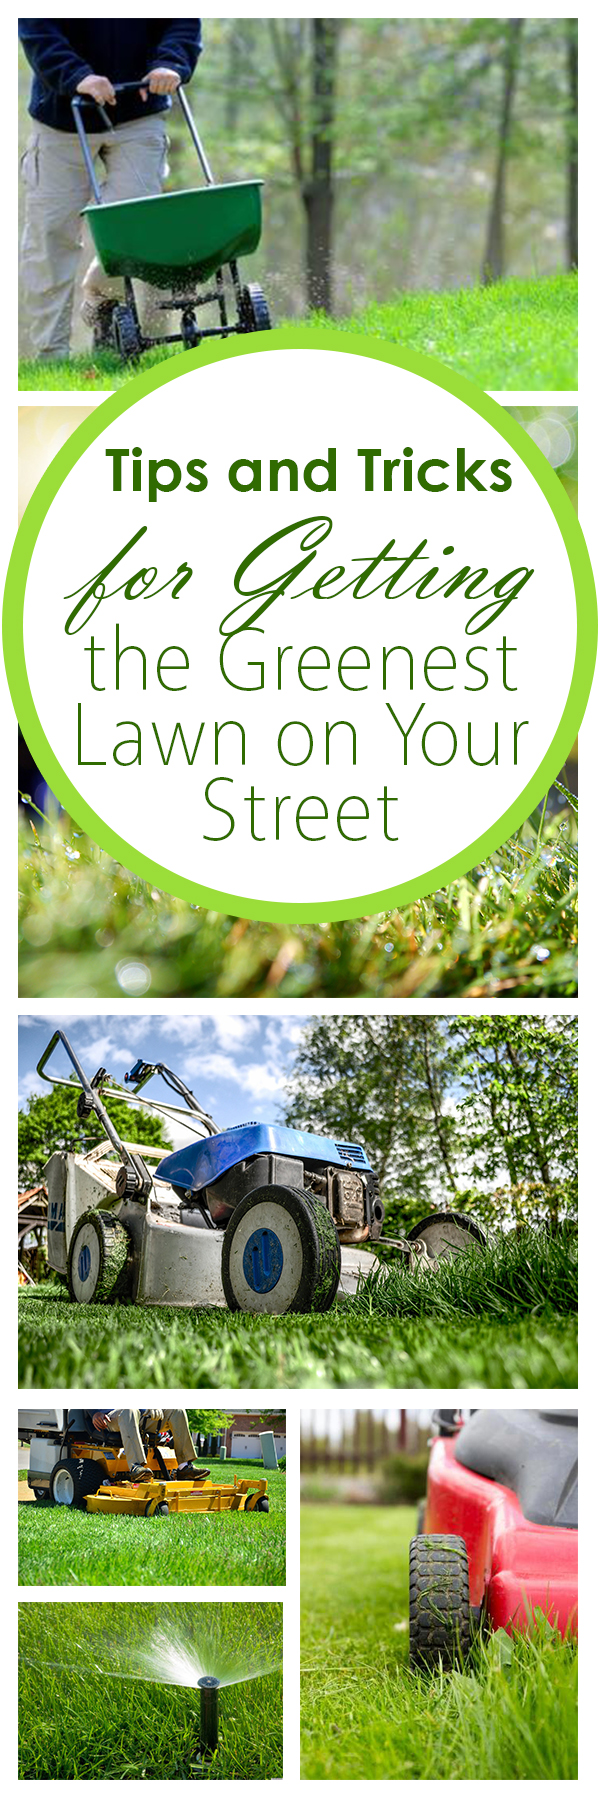 Tips on landscaping your yard : Tips and tricks for getting the greenest lawn on your street page